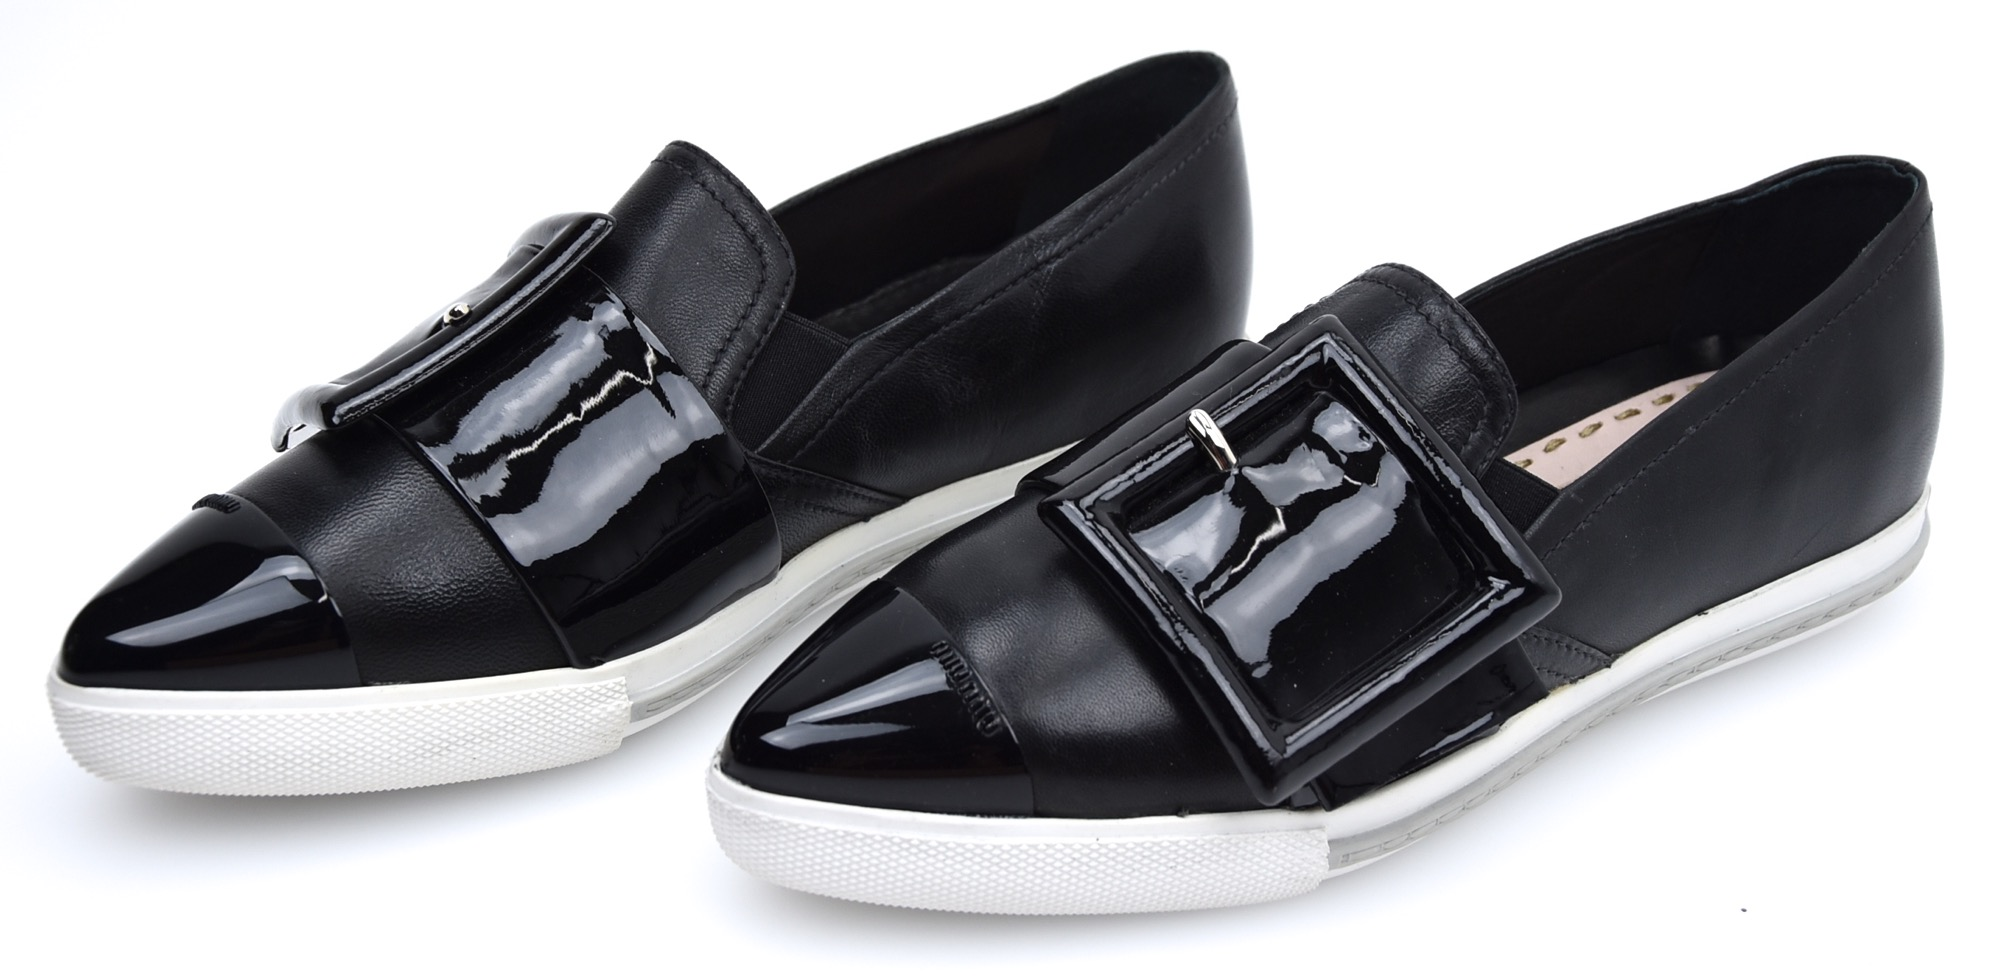 Details about MIU MIU WOMAN SNEAKER SLIP ON SHOES CASUAL FREE TIME LEATHER  CODE 5S172A b4b6d3e6ca38